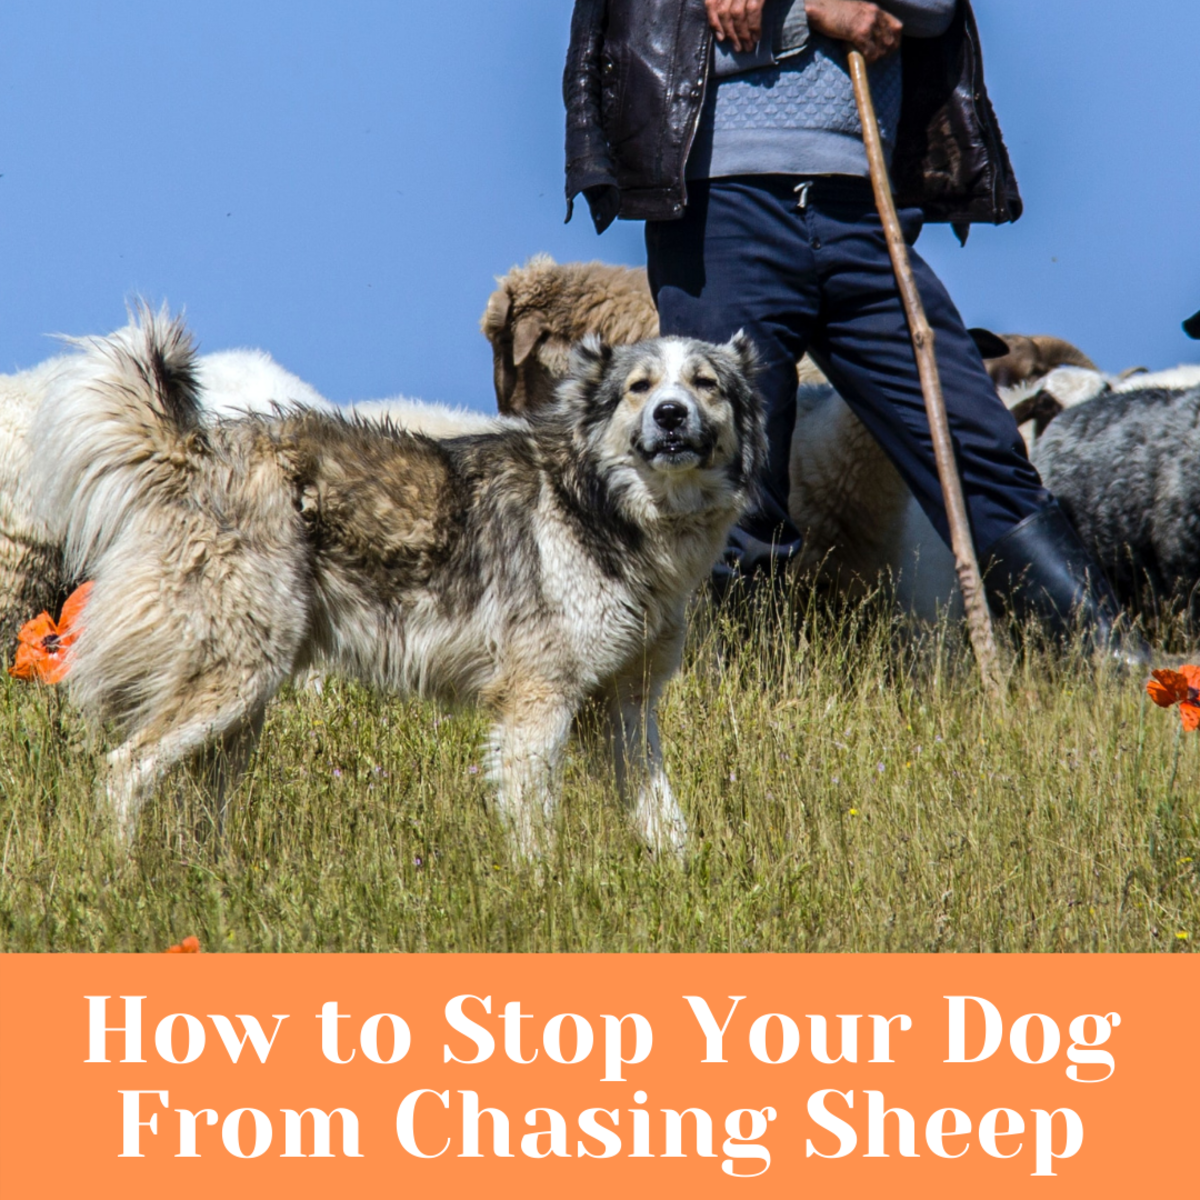 Help your dog with this behavior.